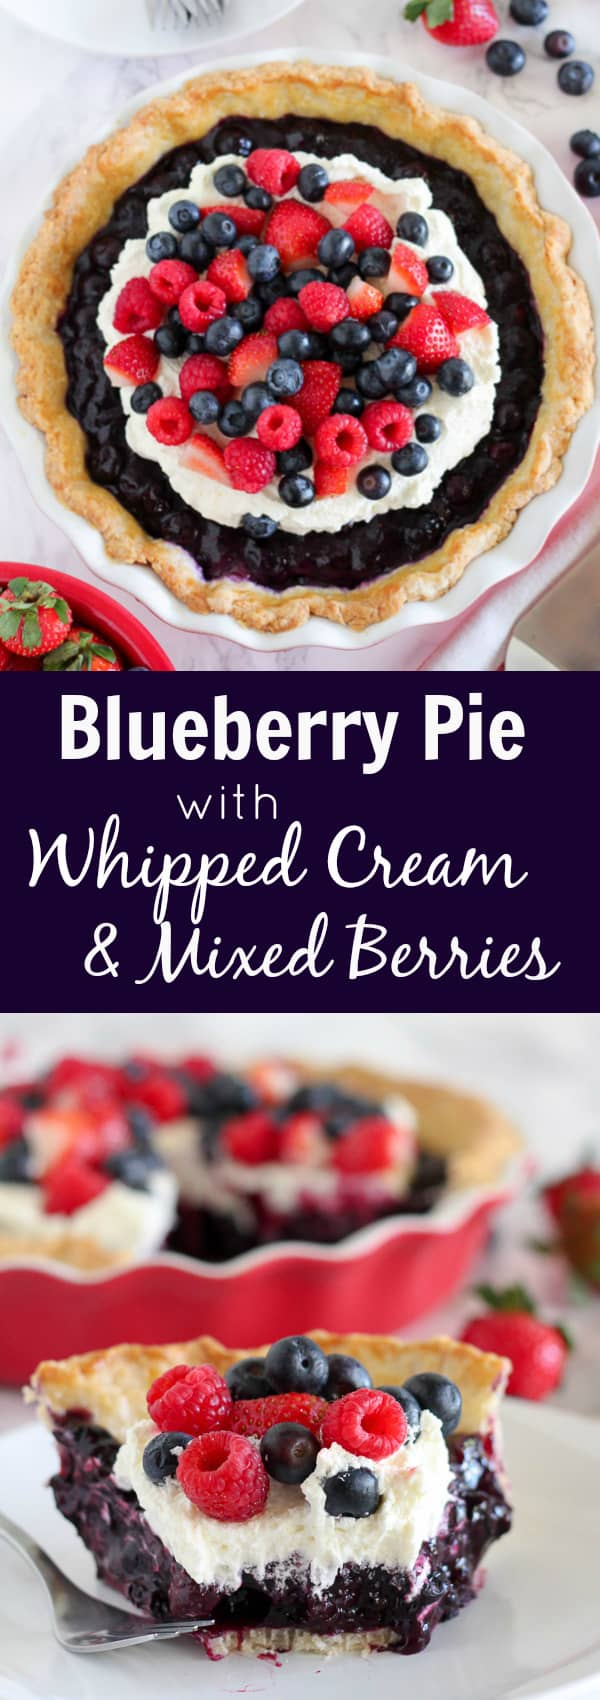 Blueberry Pie with Whipped Cream and Fresh Berries - A beautiful red, white and blue dessert.